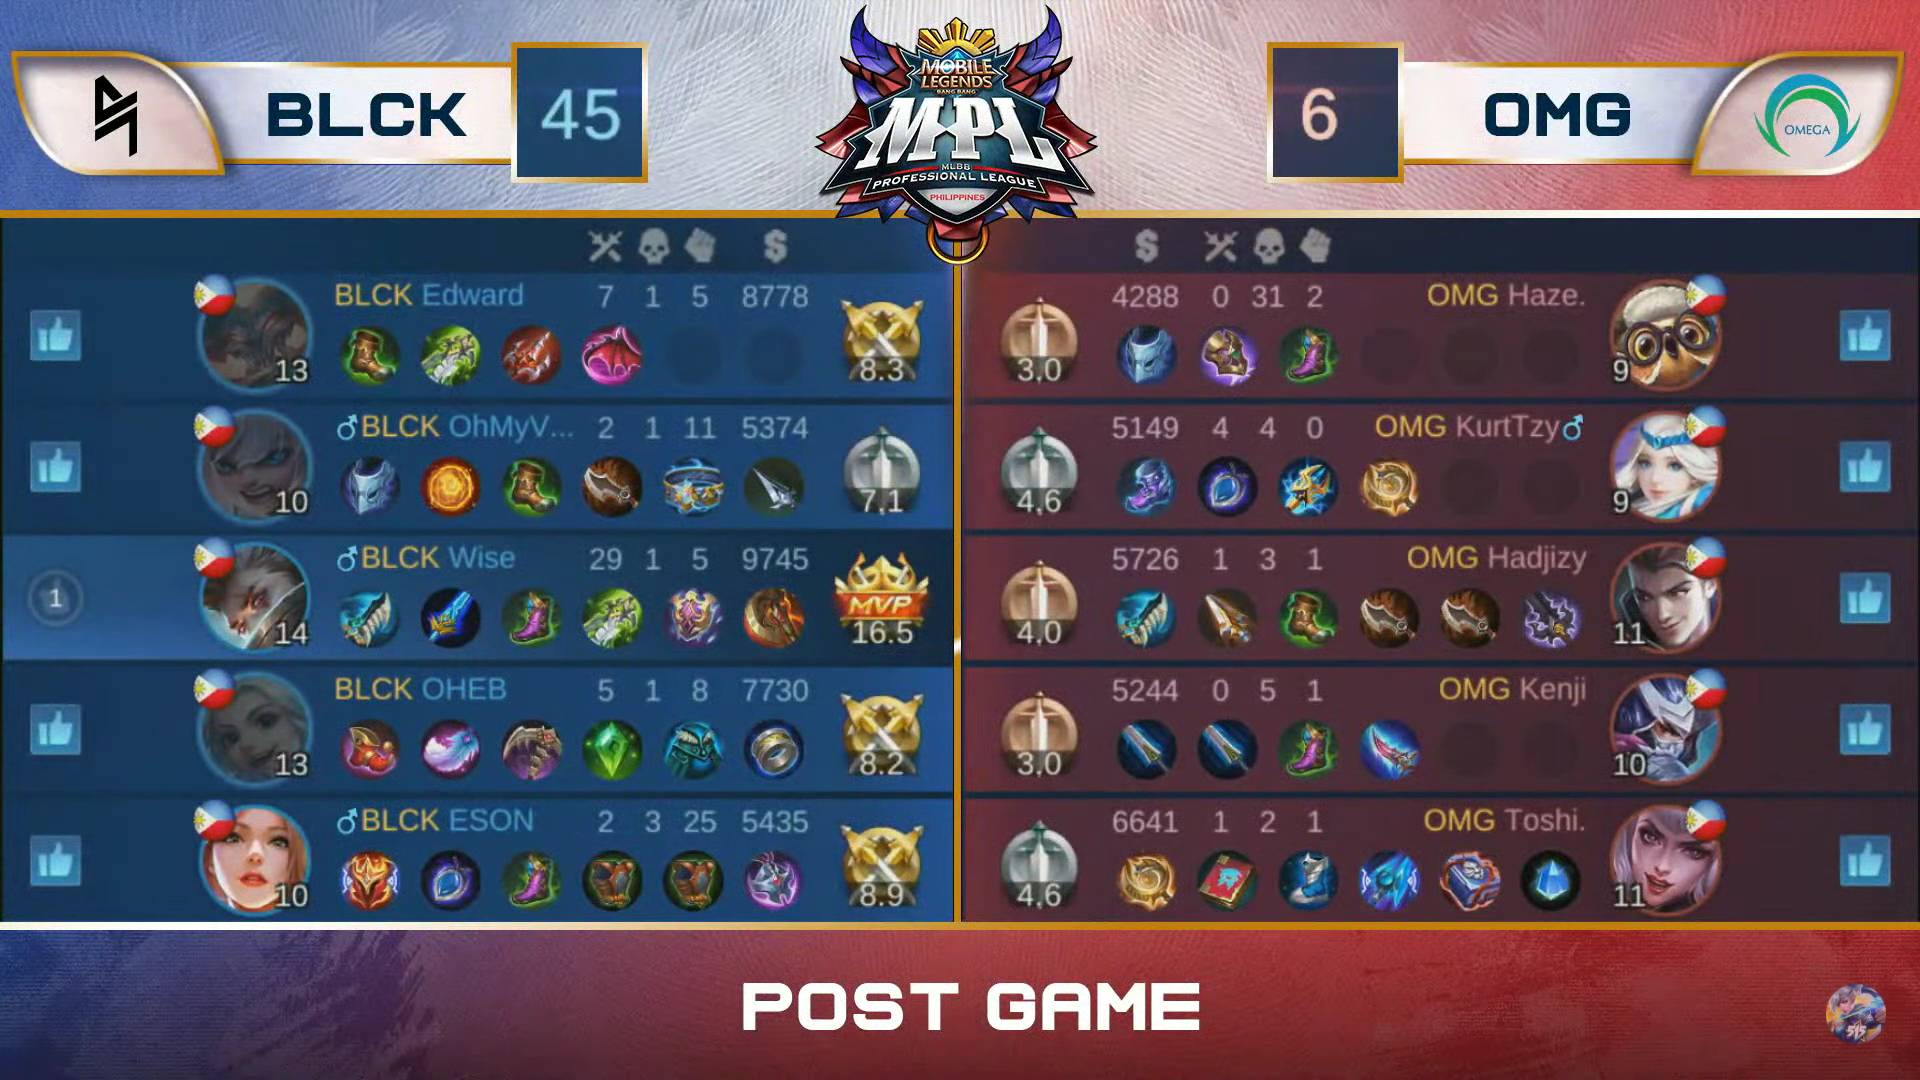 MPL-PH-7-Blacklist-def-Omega-Game-3 Blacklist remains unblemished, deals Omega third straight loss in MPL-PH ESports Mobile Legends MPL-PH News  - philippine sports news